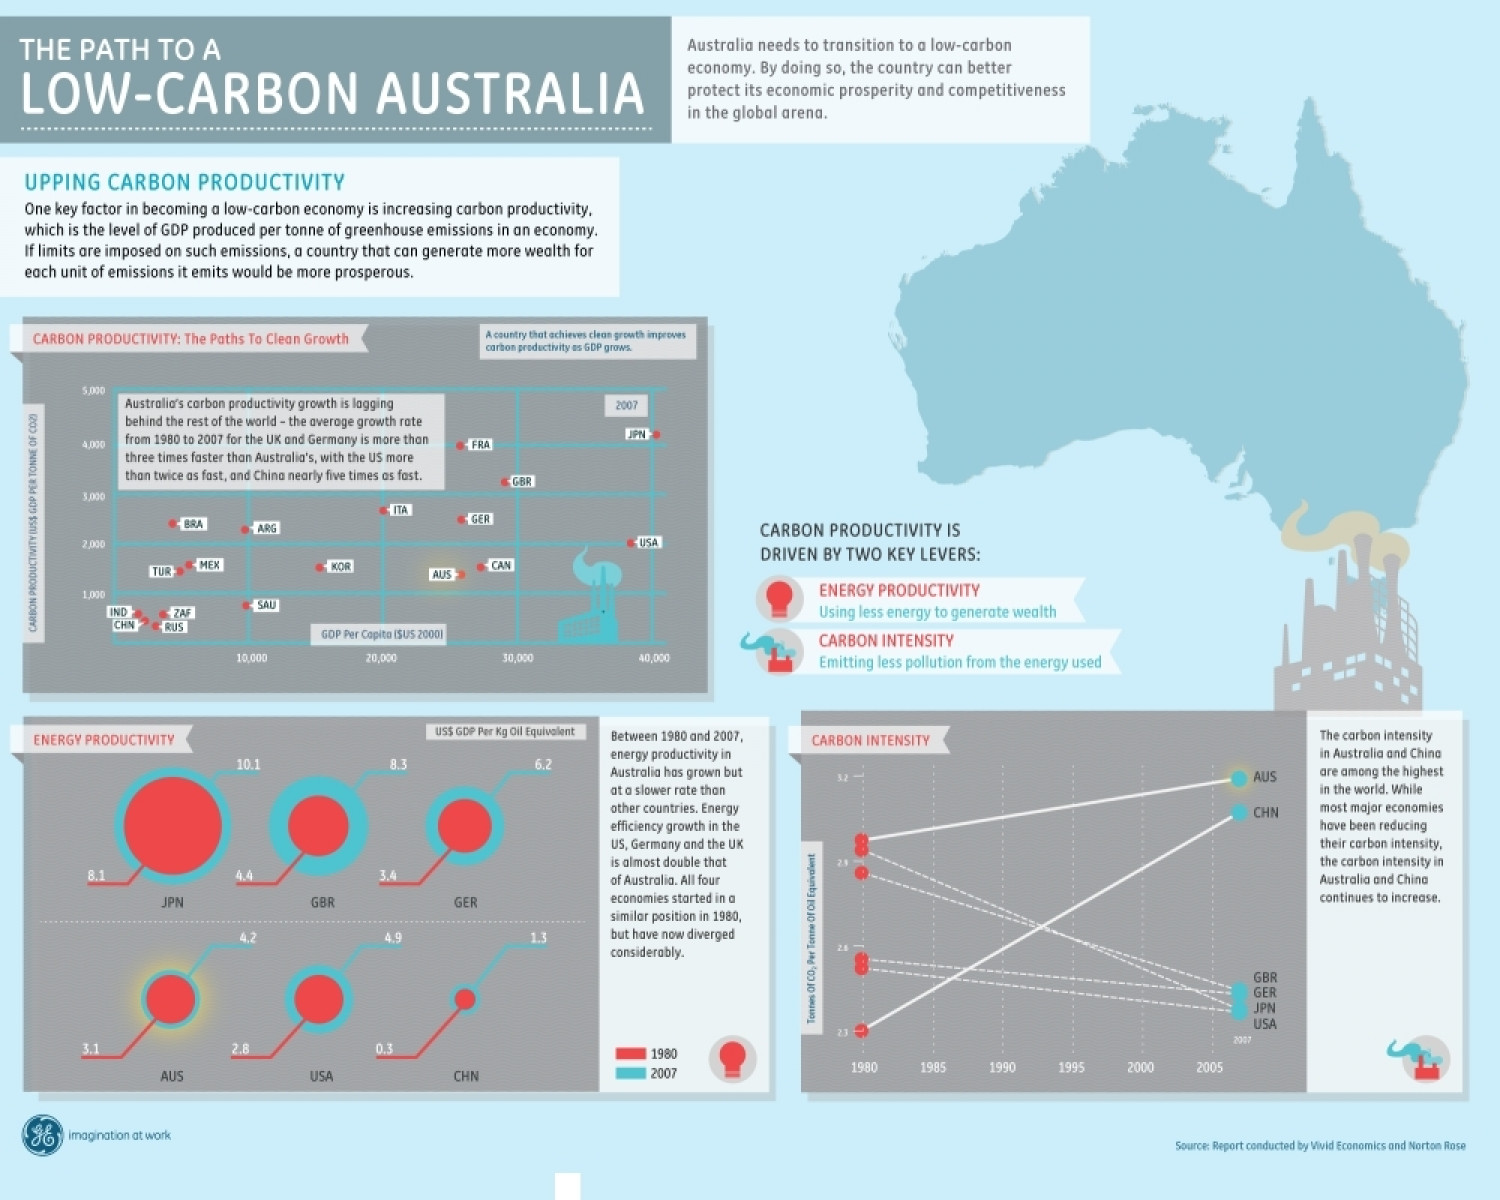 The Path to a Low-Carbon Australia Infographic